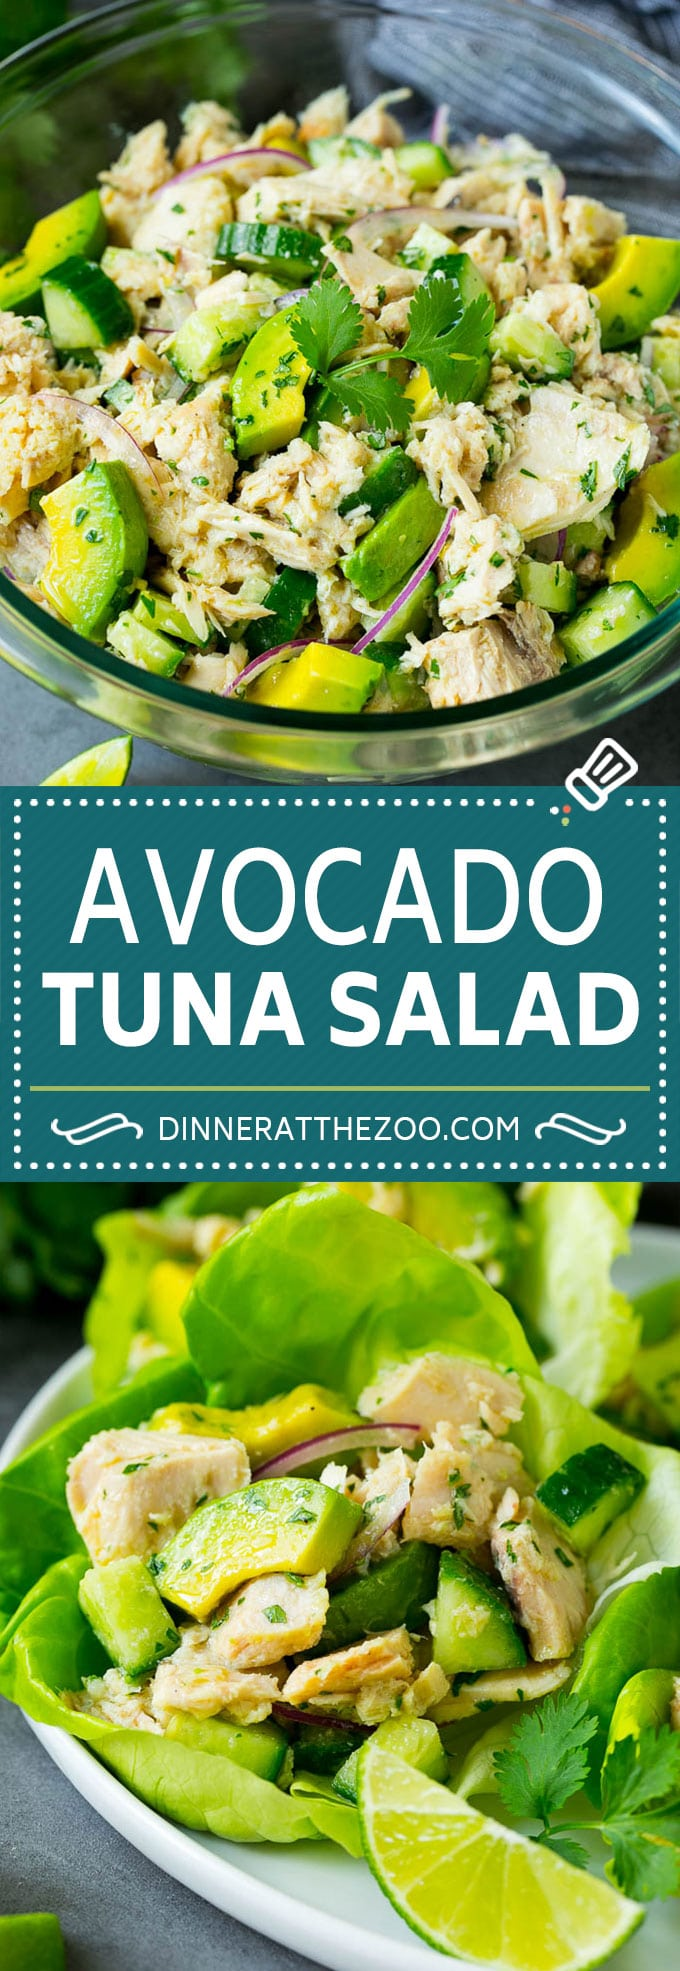 Avocado Tuna Salad Dinner At The Zoo